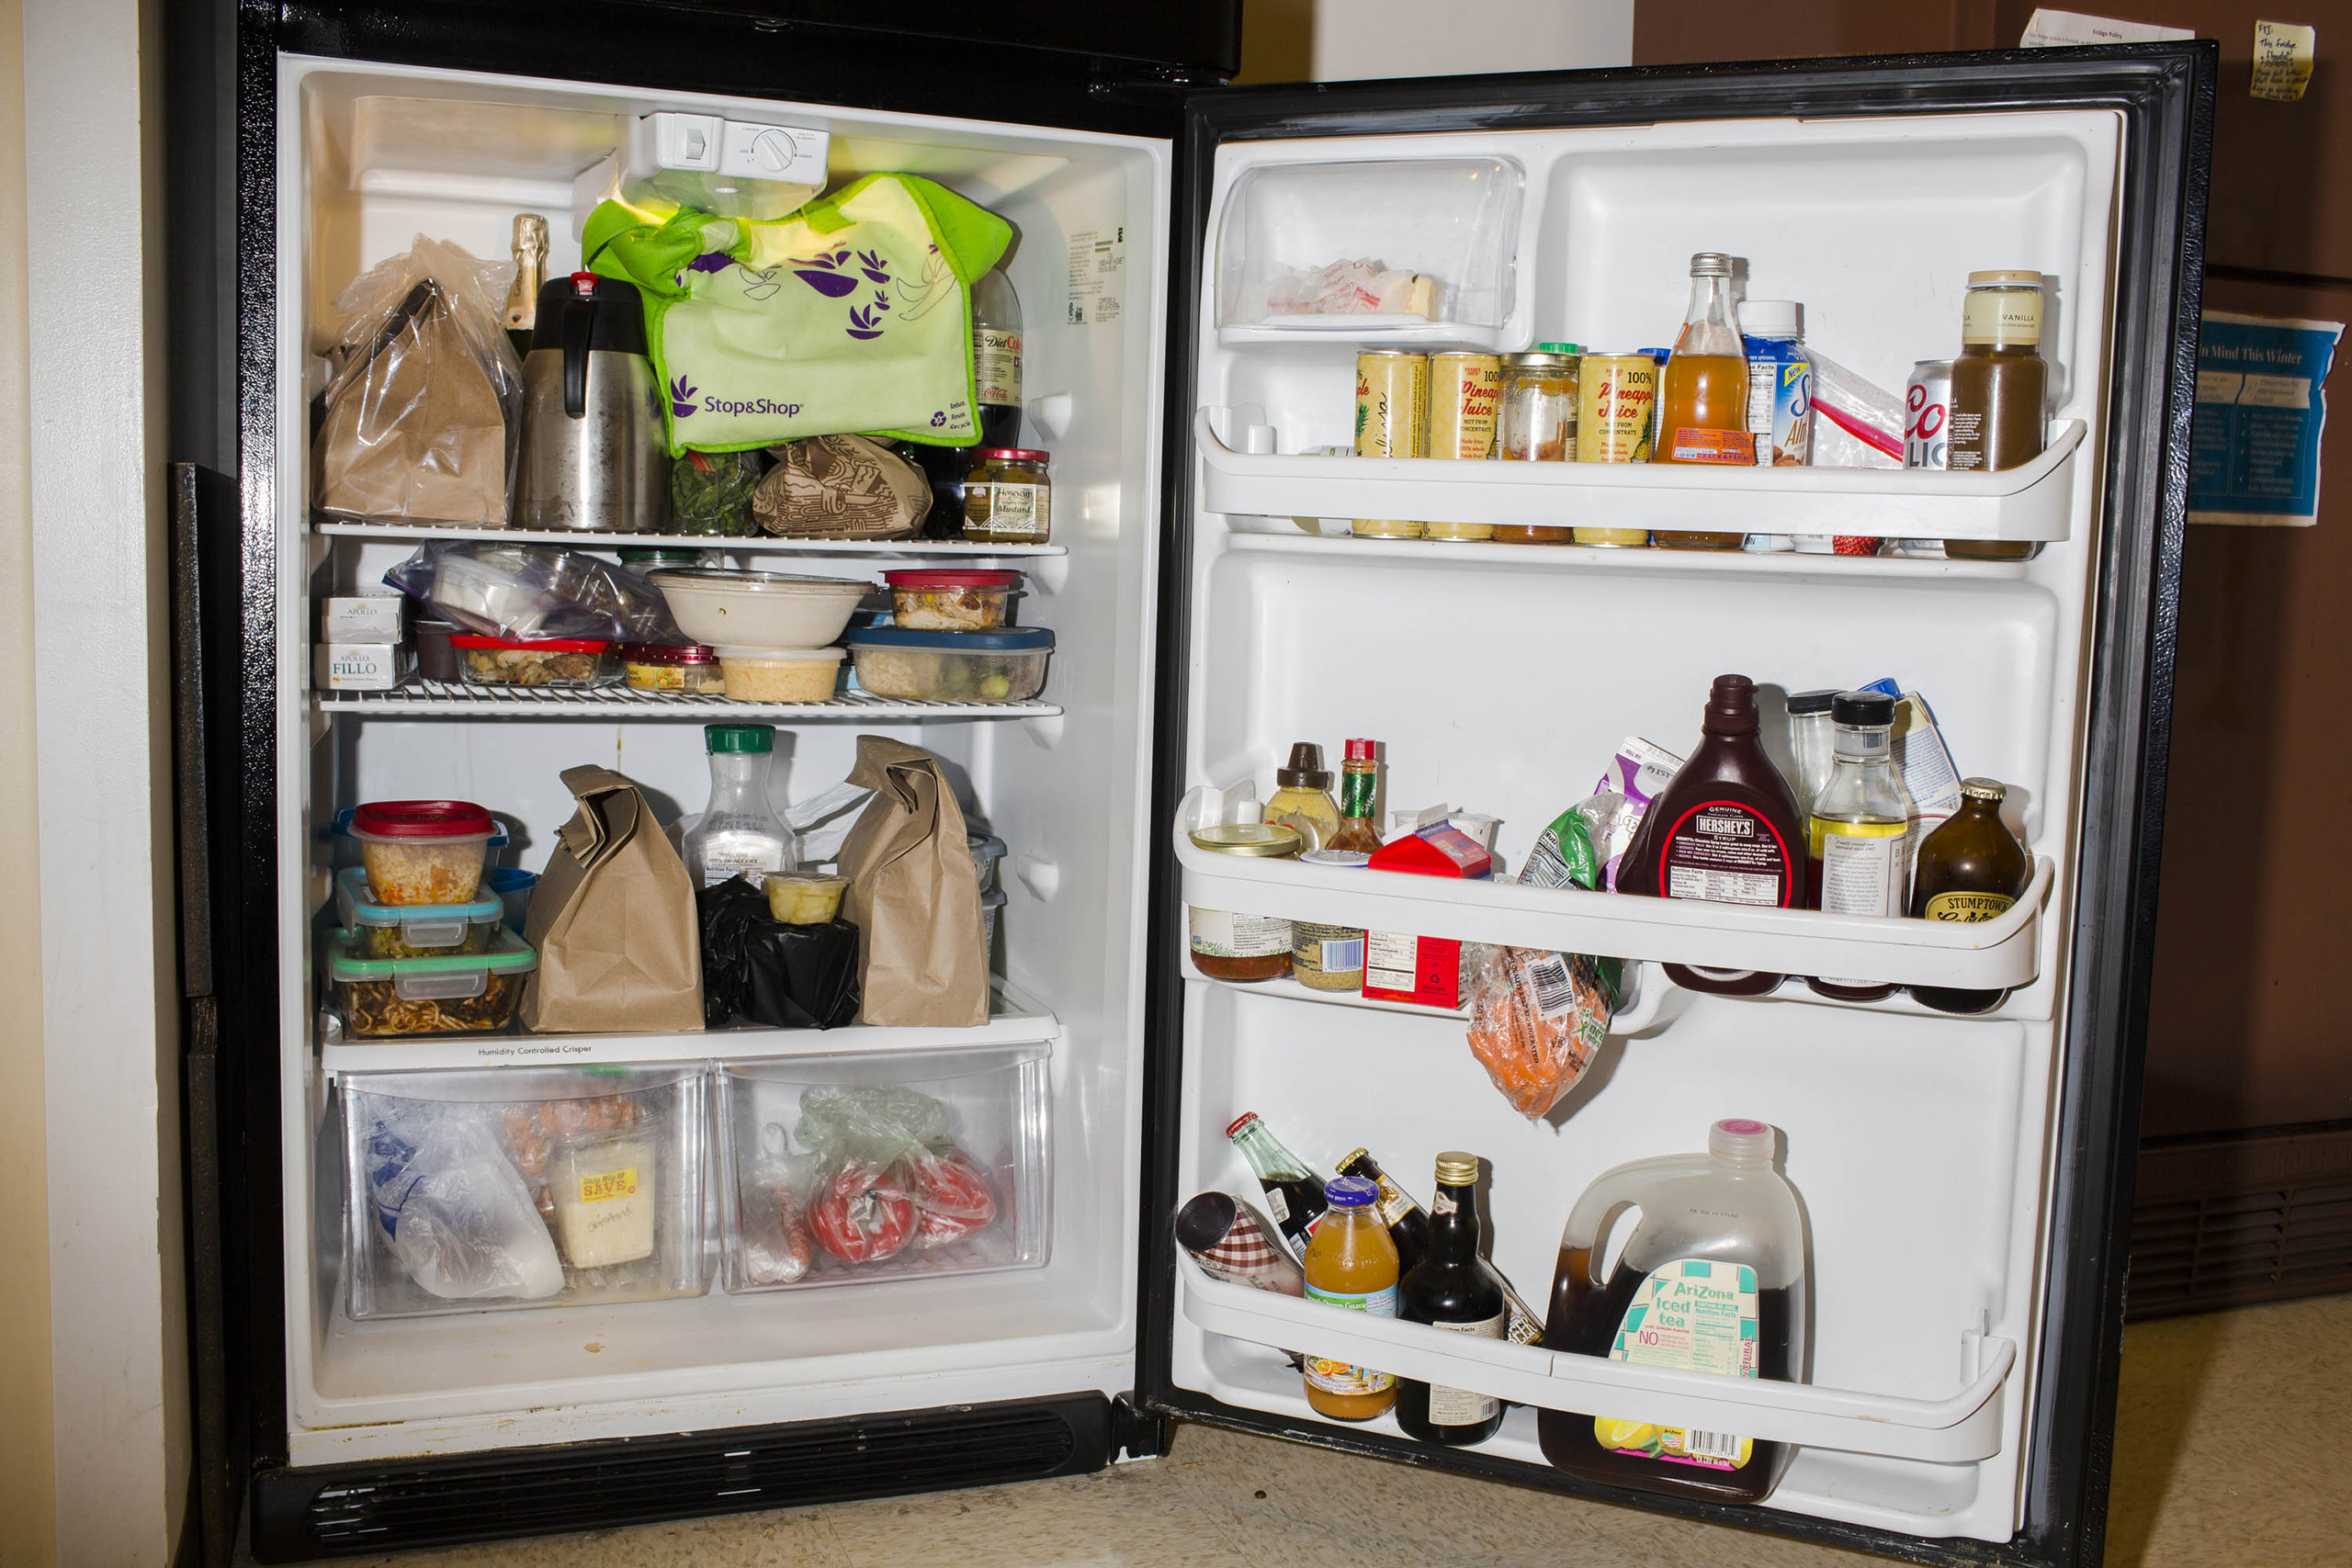 One of two staff refrigerators at the campaign headquarters of Hillary Clinton on May 24, 2016, in Brooklyn, NY.